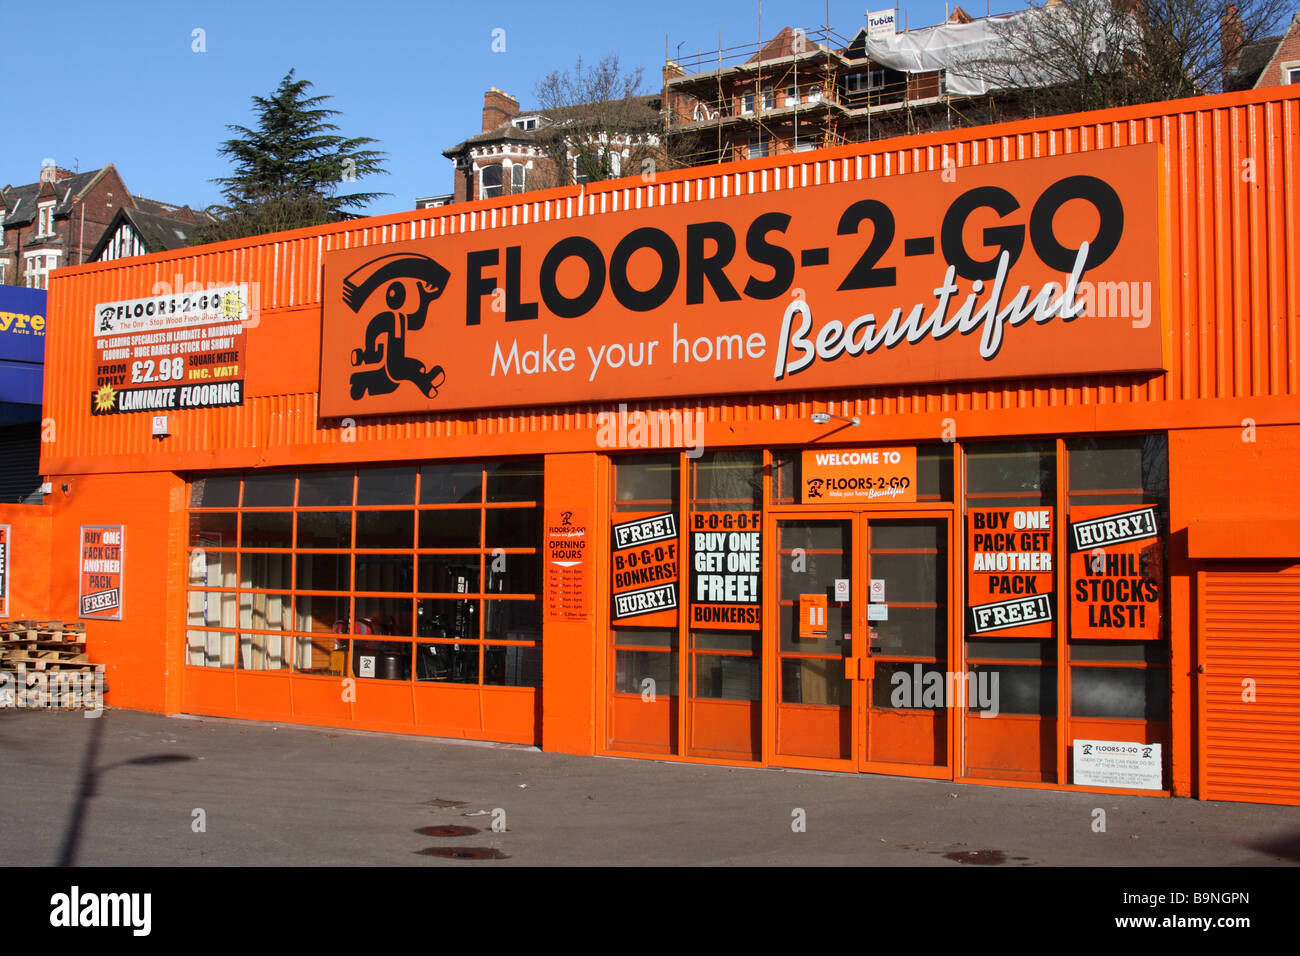 Floors-2-Go retail outlet in a U.K. city. - Stock Image